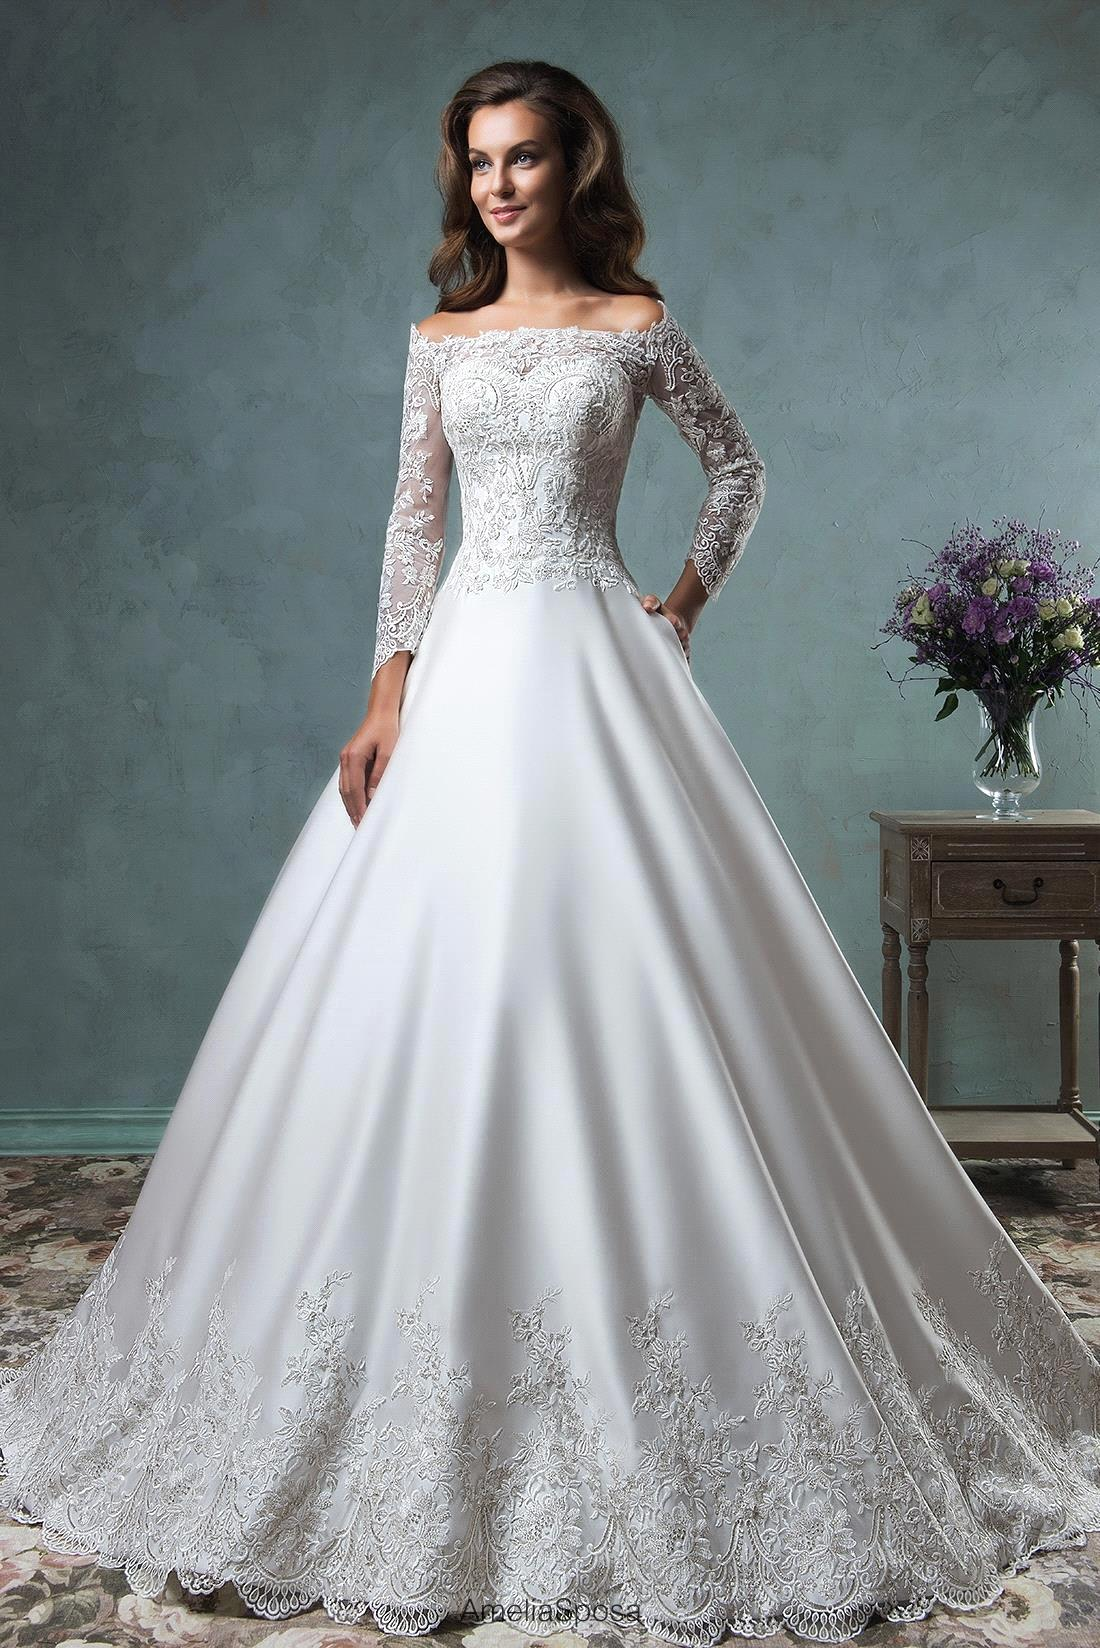 Vestido de noiva elegant boat neck ball gown wedding for Long sleeve ball gown wedding dress